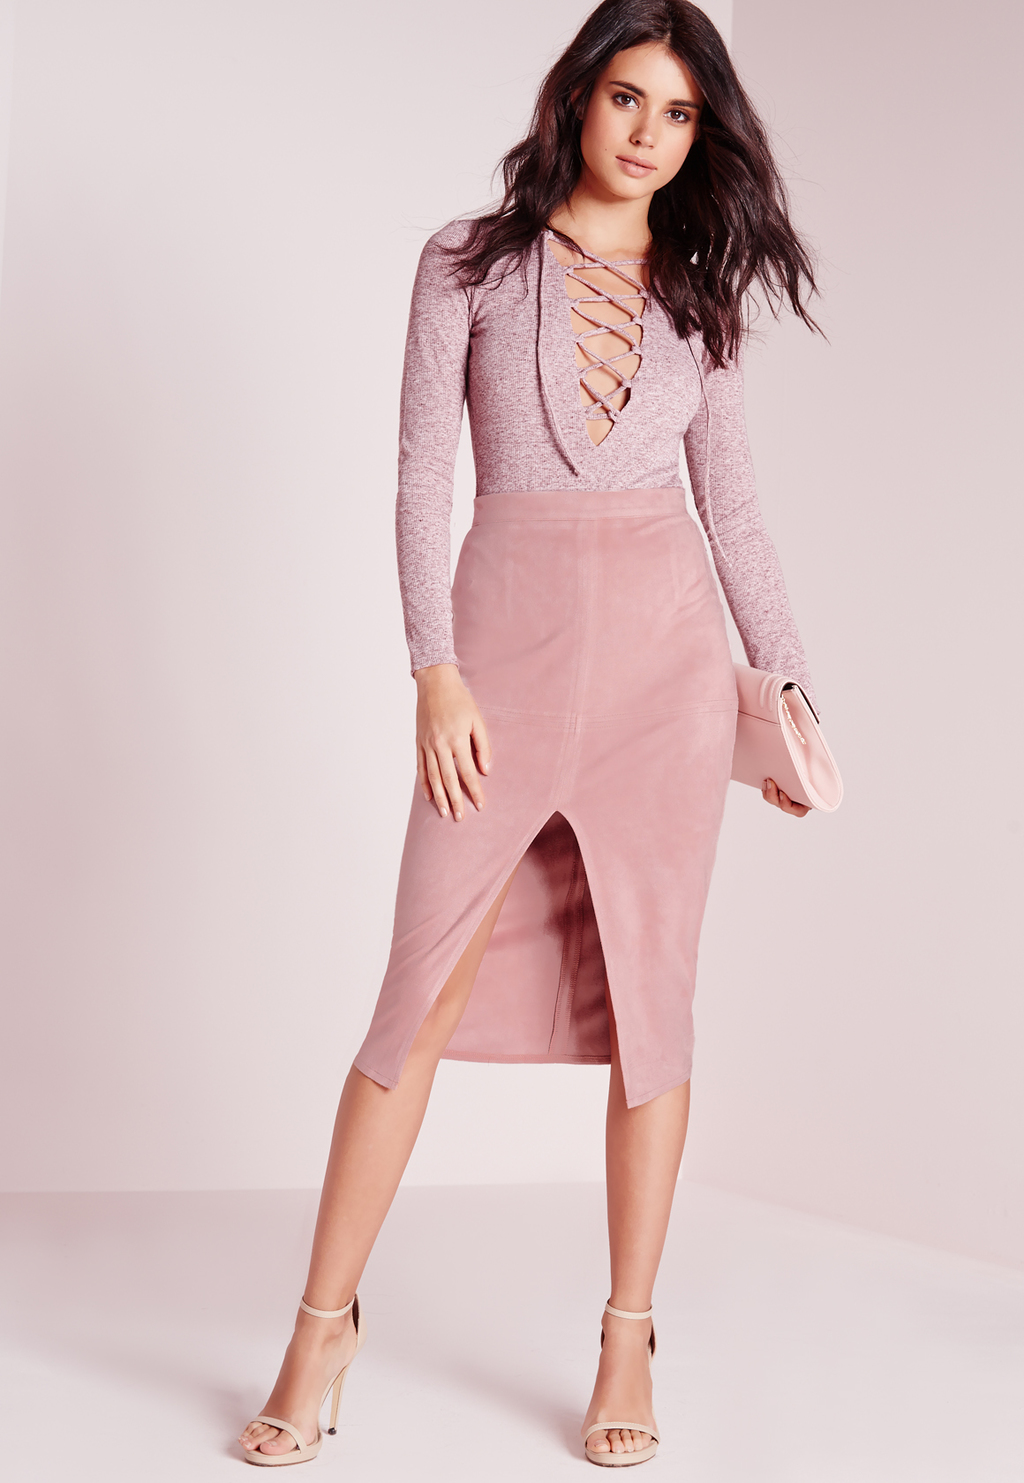 Tall Split Front Longline Faux Suede Midi Skirt Lilac Ash, Purple - length: below the knee; pattern: plain; style: pencil; fit: tight; waist: high rise; predominant colour: pink; occasions: evening; fibres: polyester/polyamide - stretch; pattern type: fabric; texture group: suede; season: s/s 2016; wardrobe: event